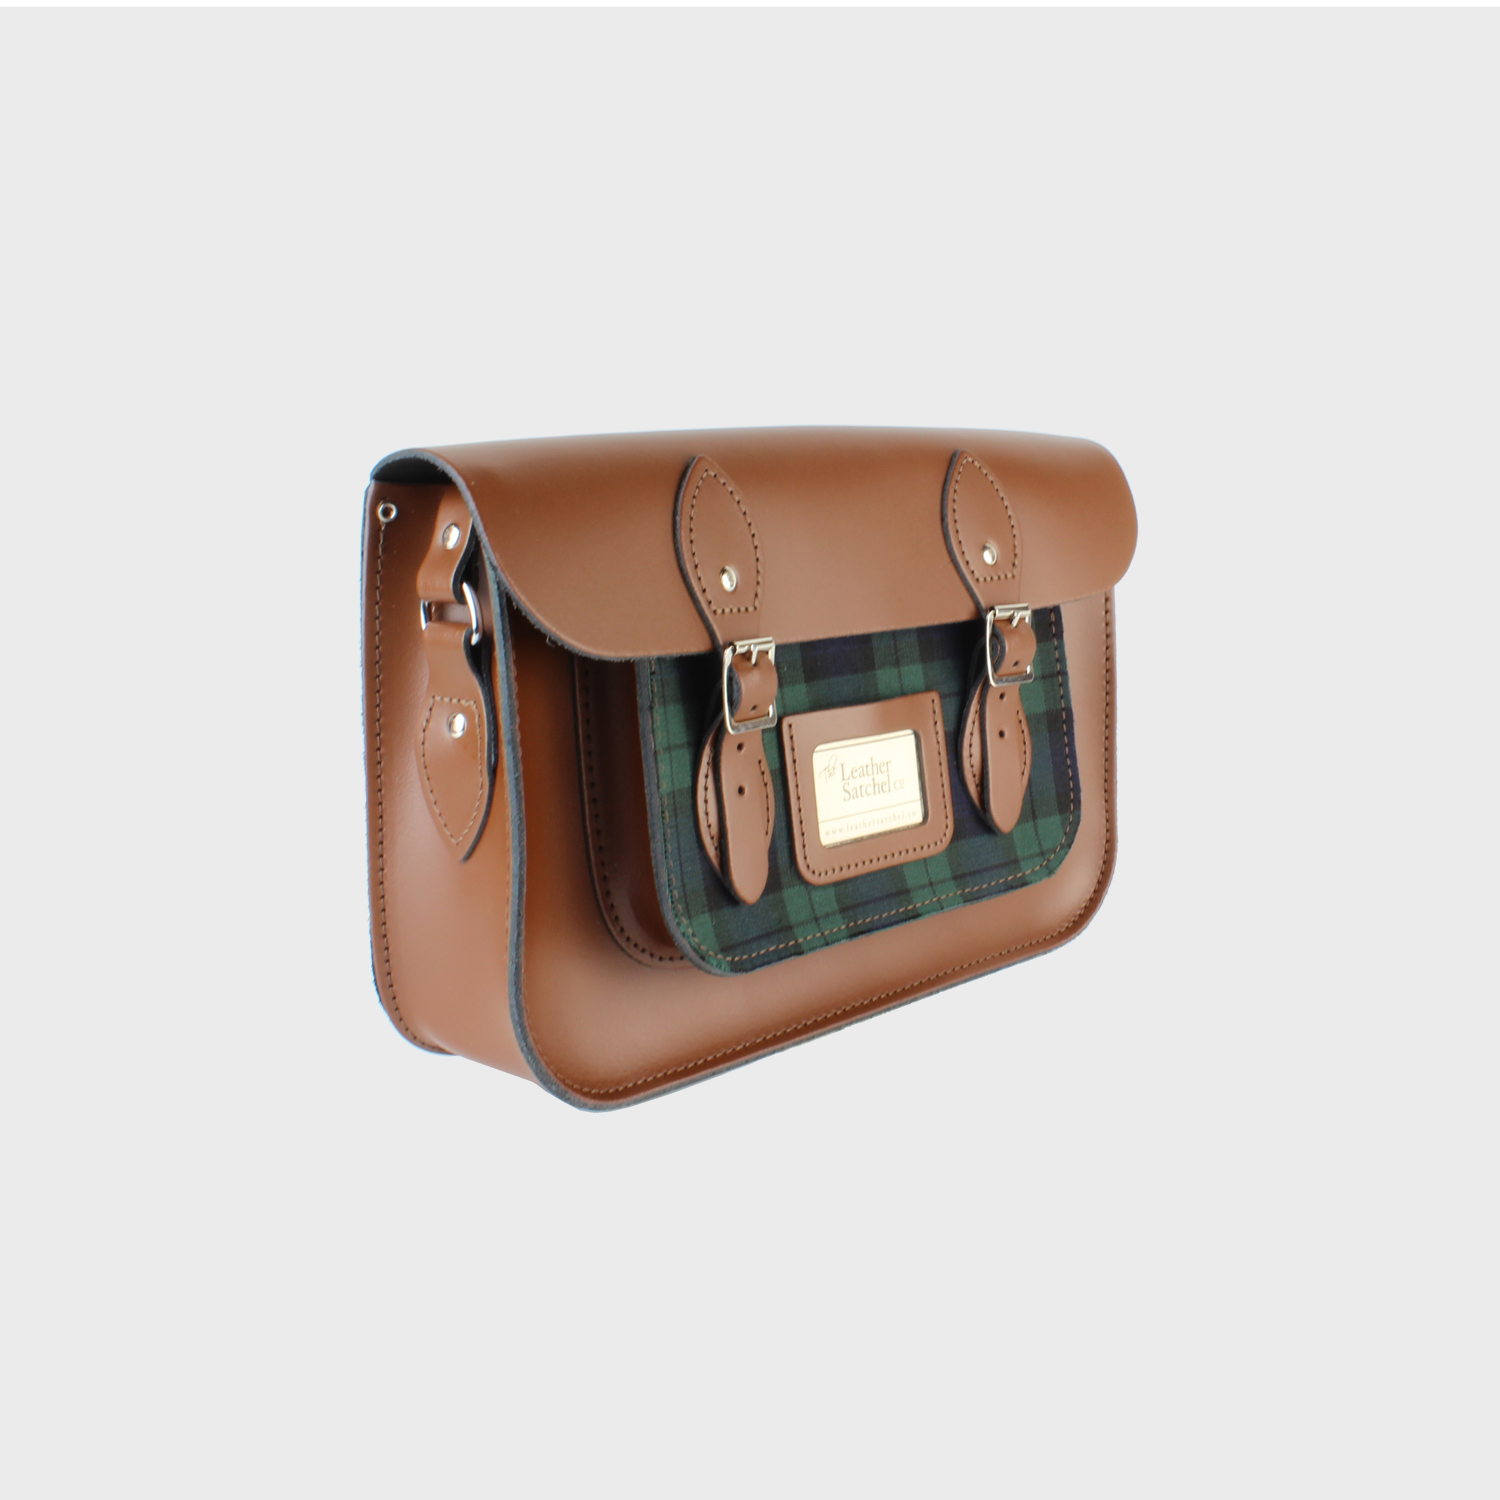 Classic Snow White Leather Satchel 12.5 inch - The Leather Satchel Co.